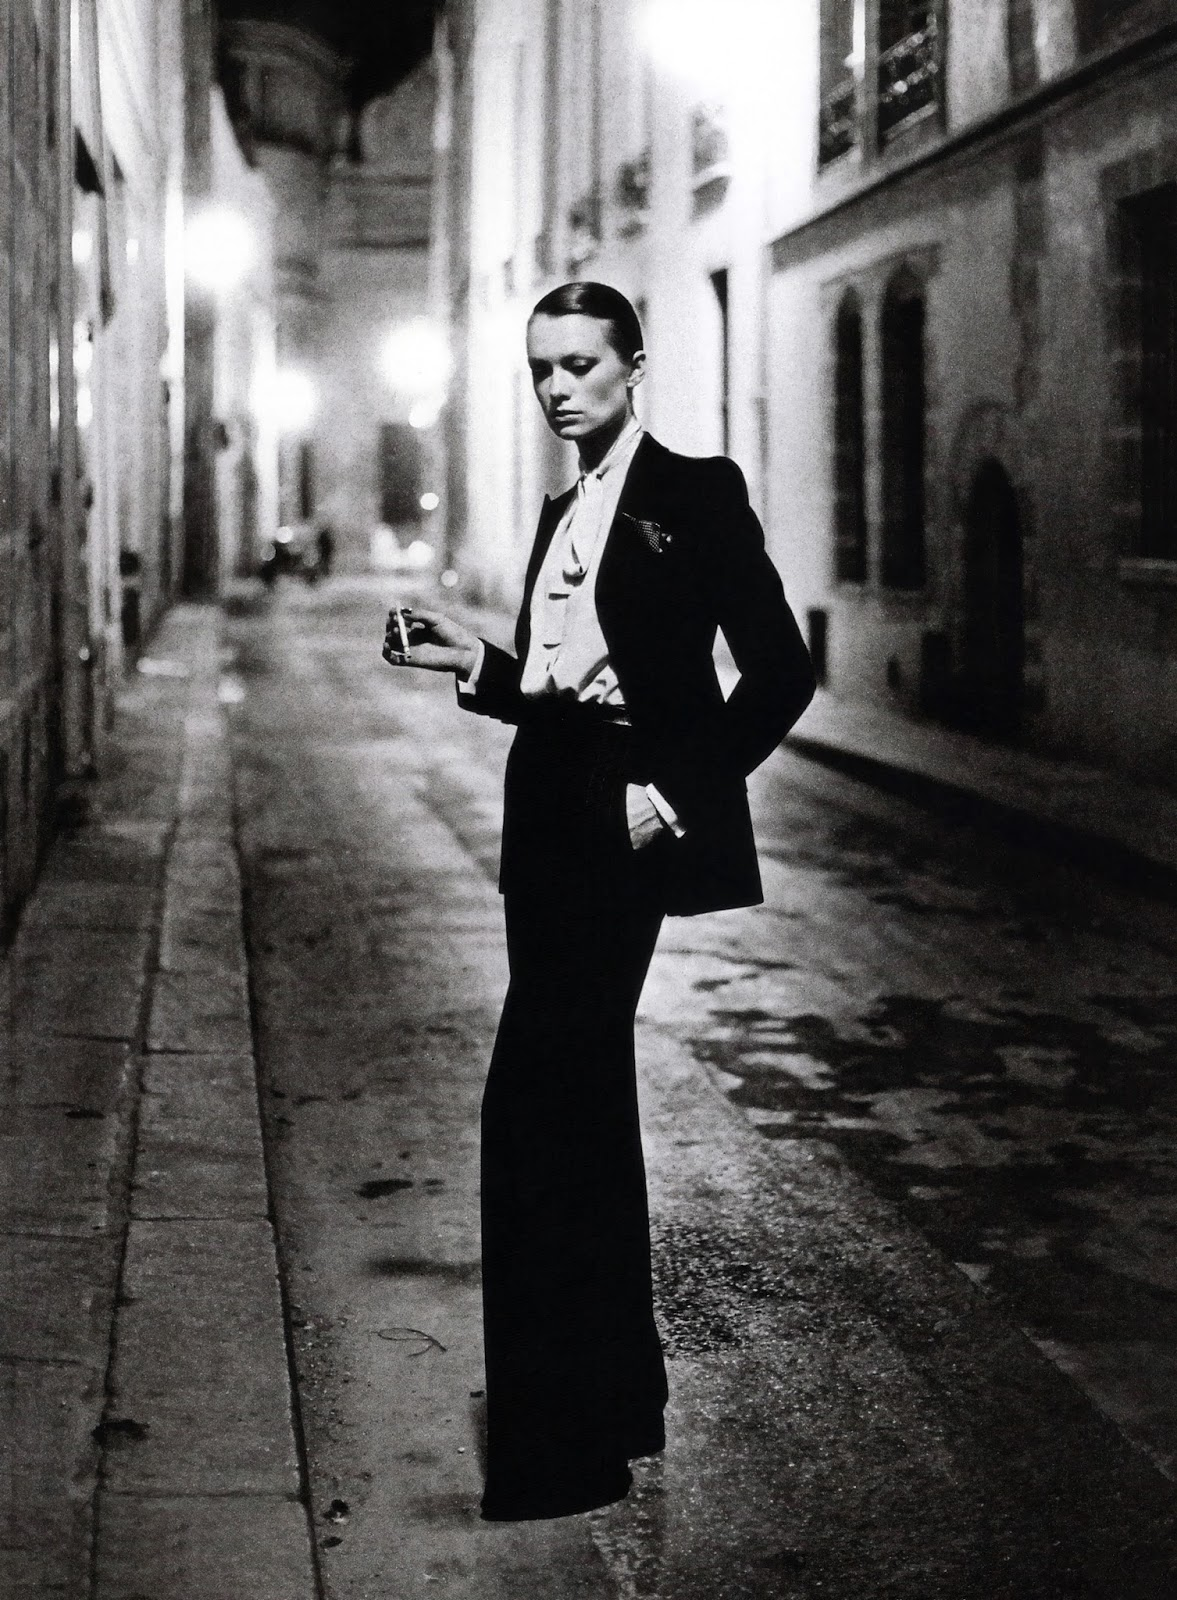 Vibeke wearing a grey stripped suit (le smoking) photographed by Helmut Newton for Vogue Paris 1975